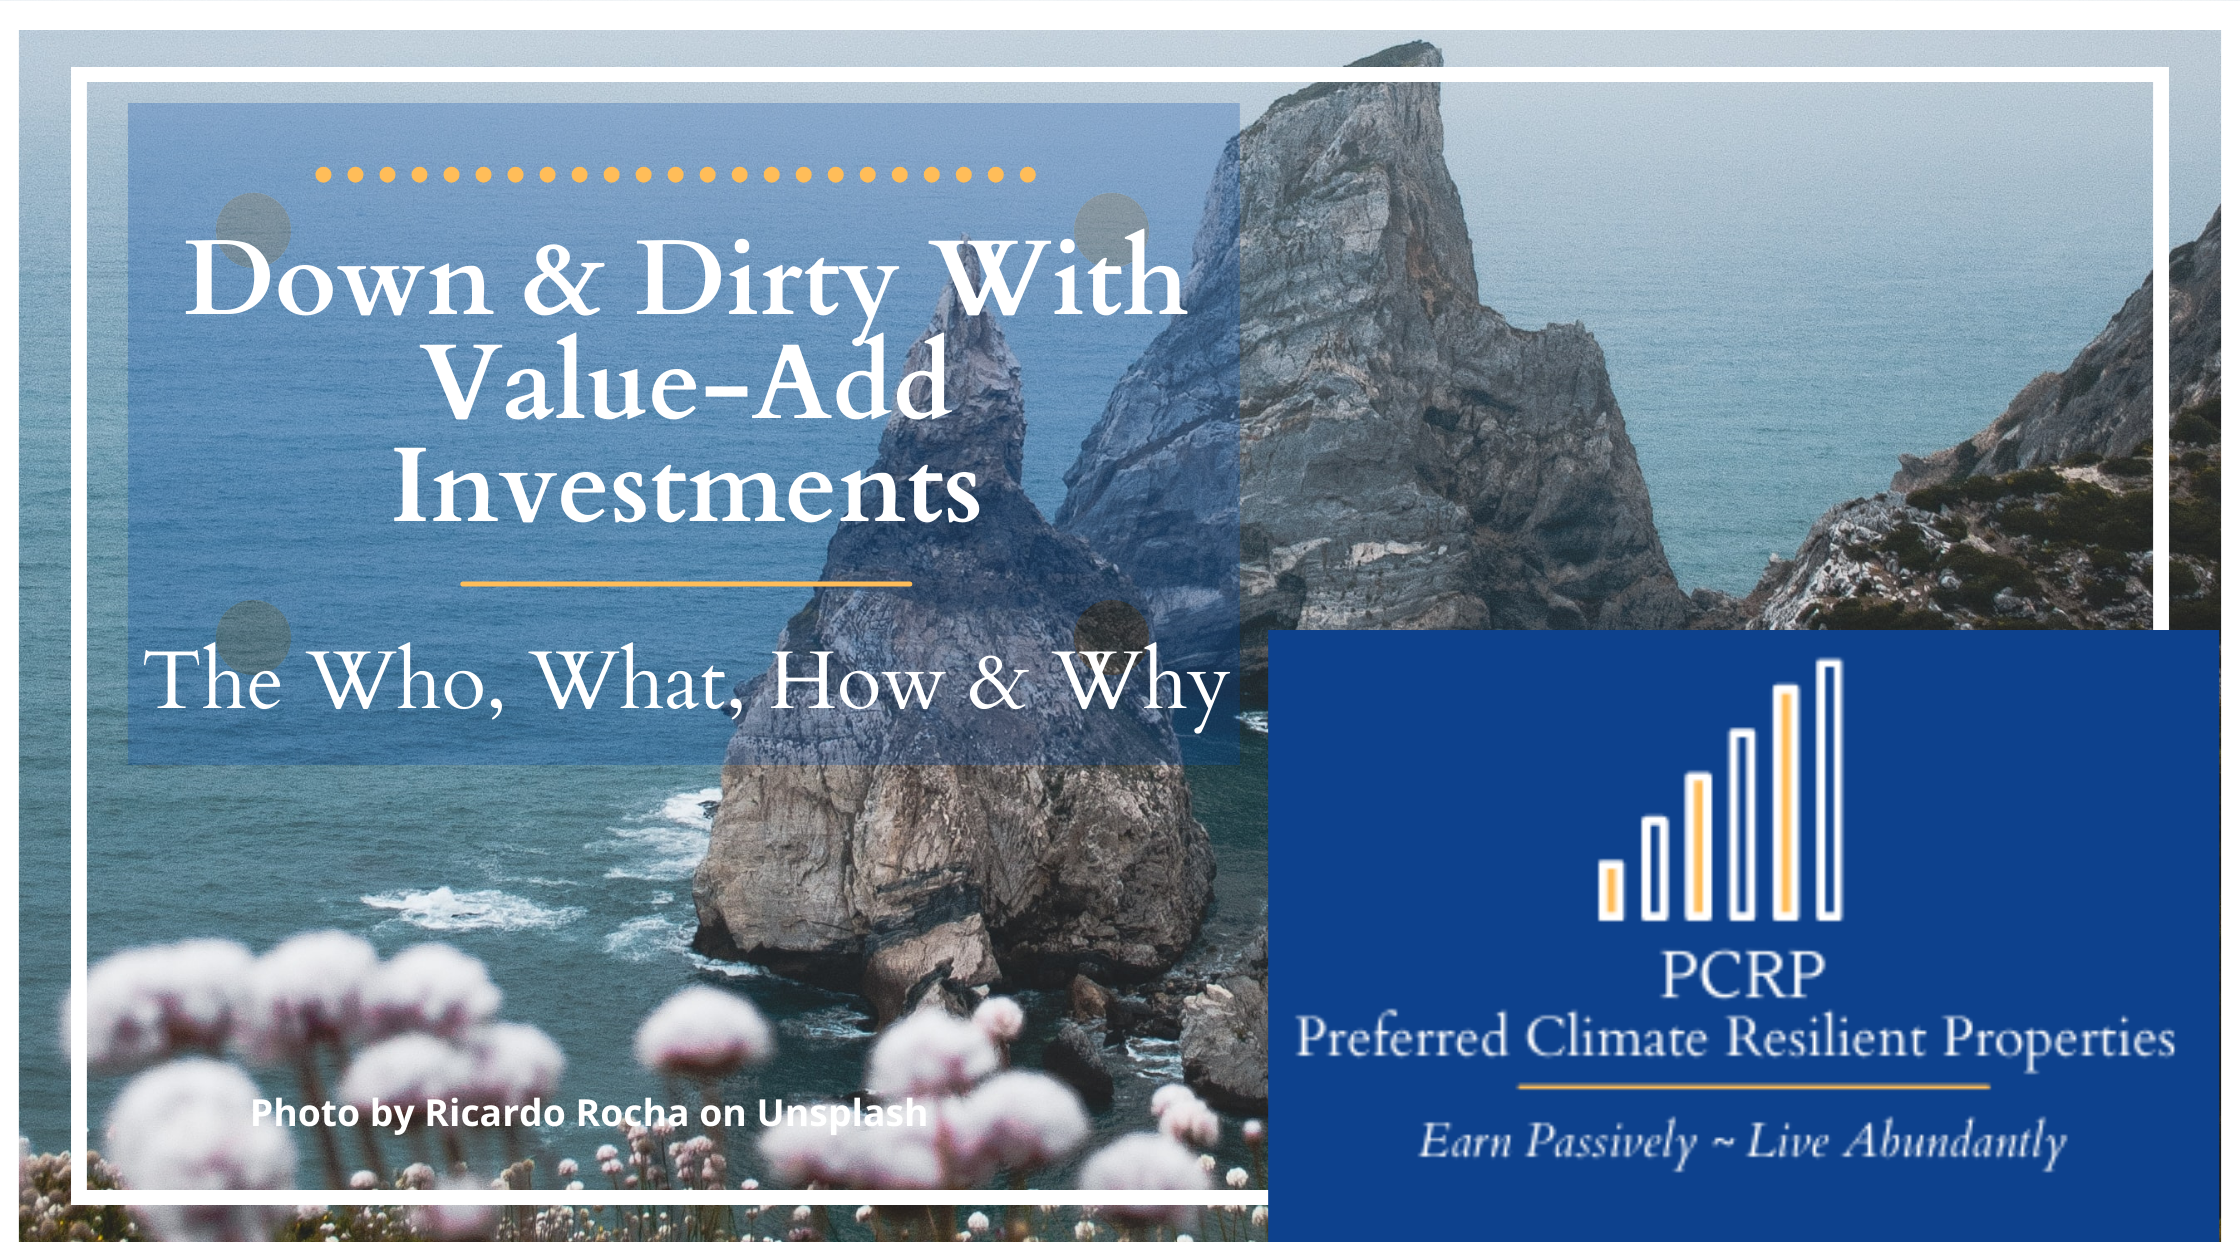 rocky cliff - Down & Dirty of Value-Add Investments